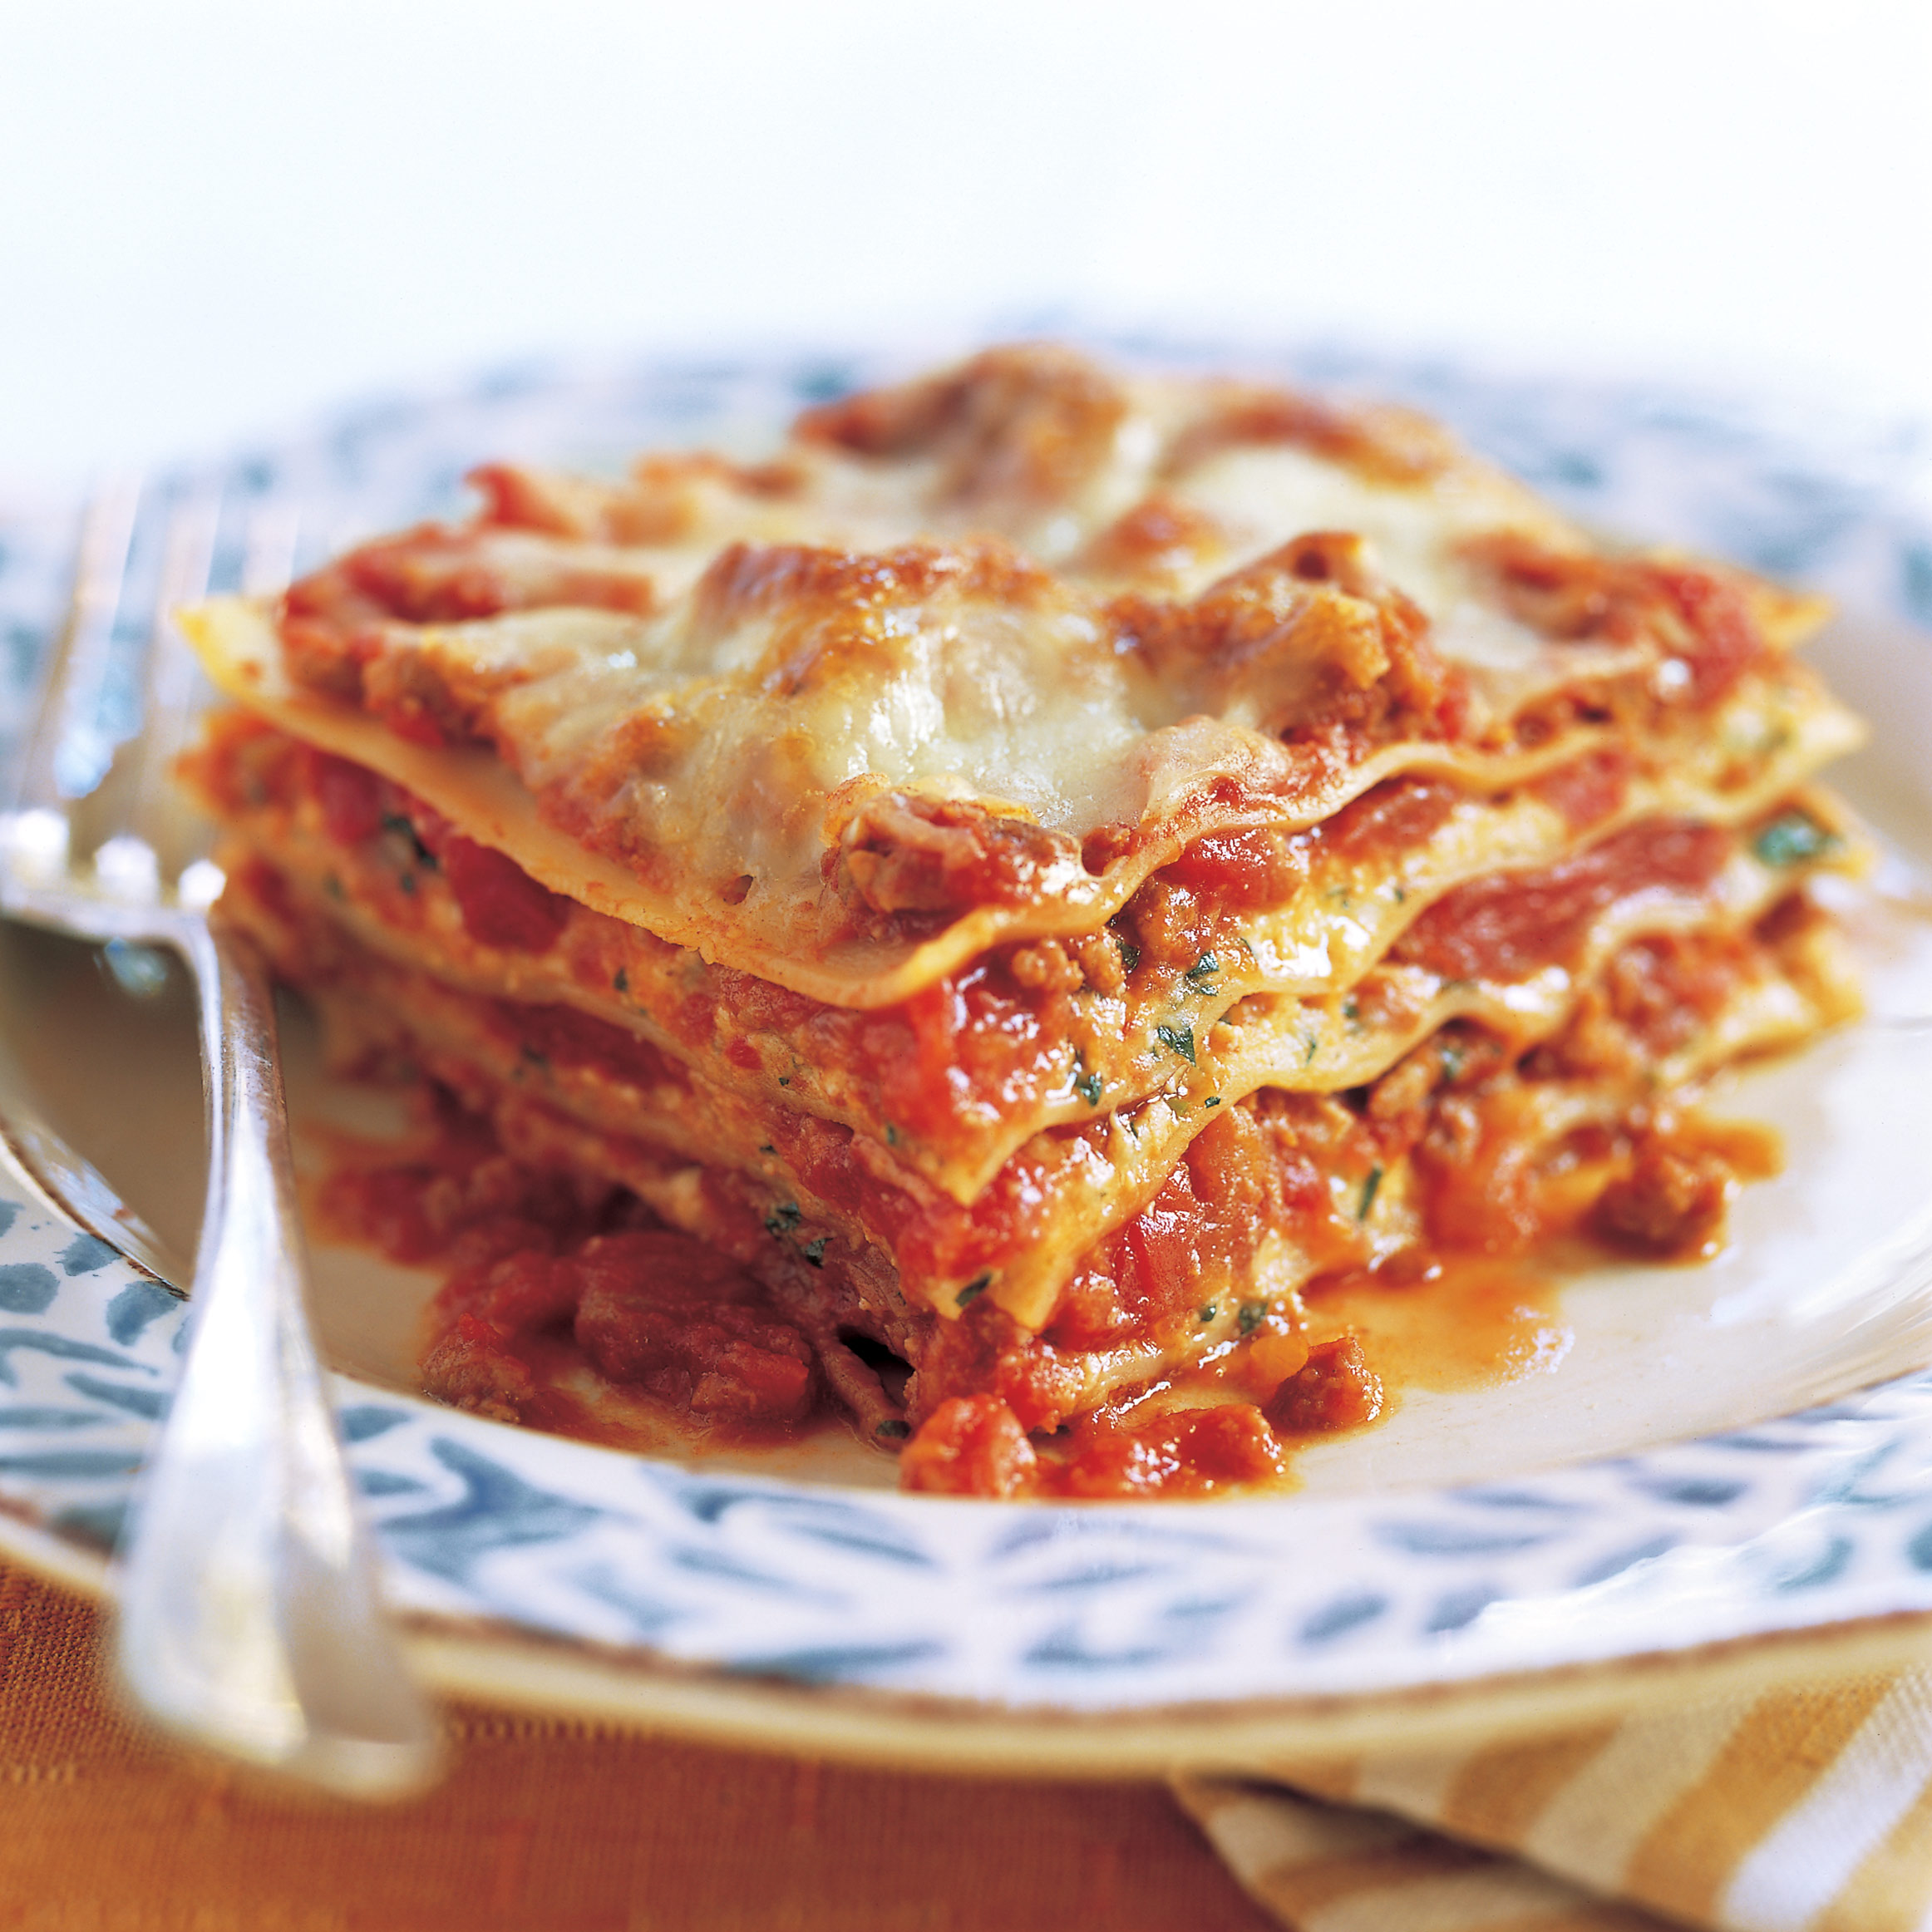 Light Meat and Cheese Lasagna Recipe - Cook's Illustrated